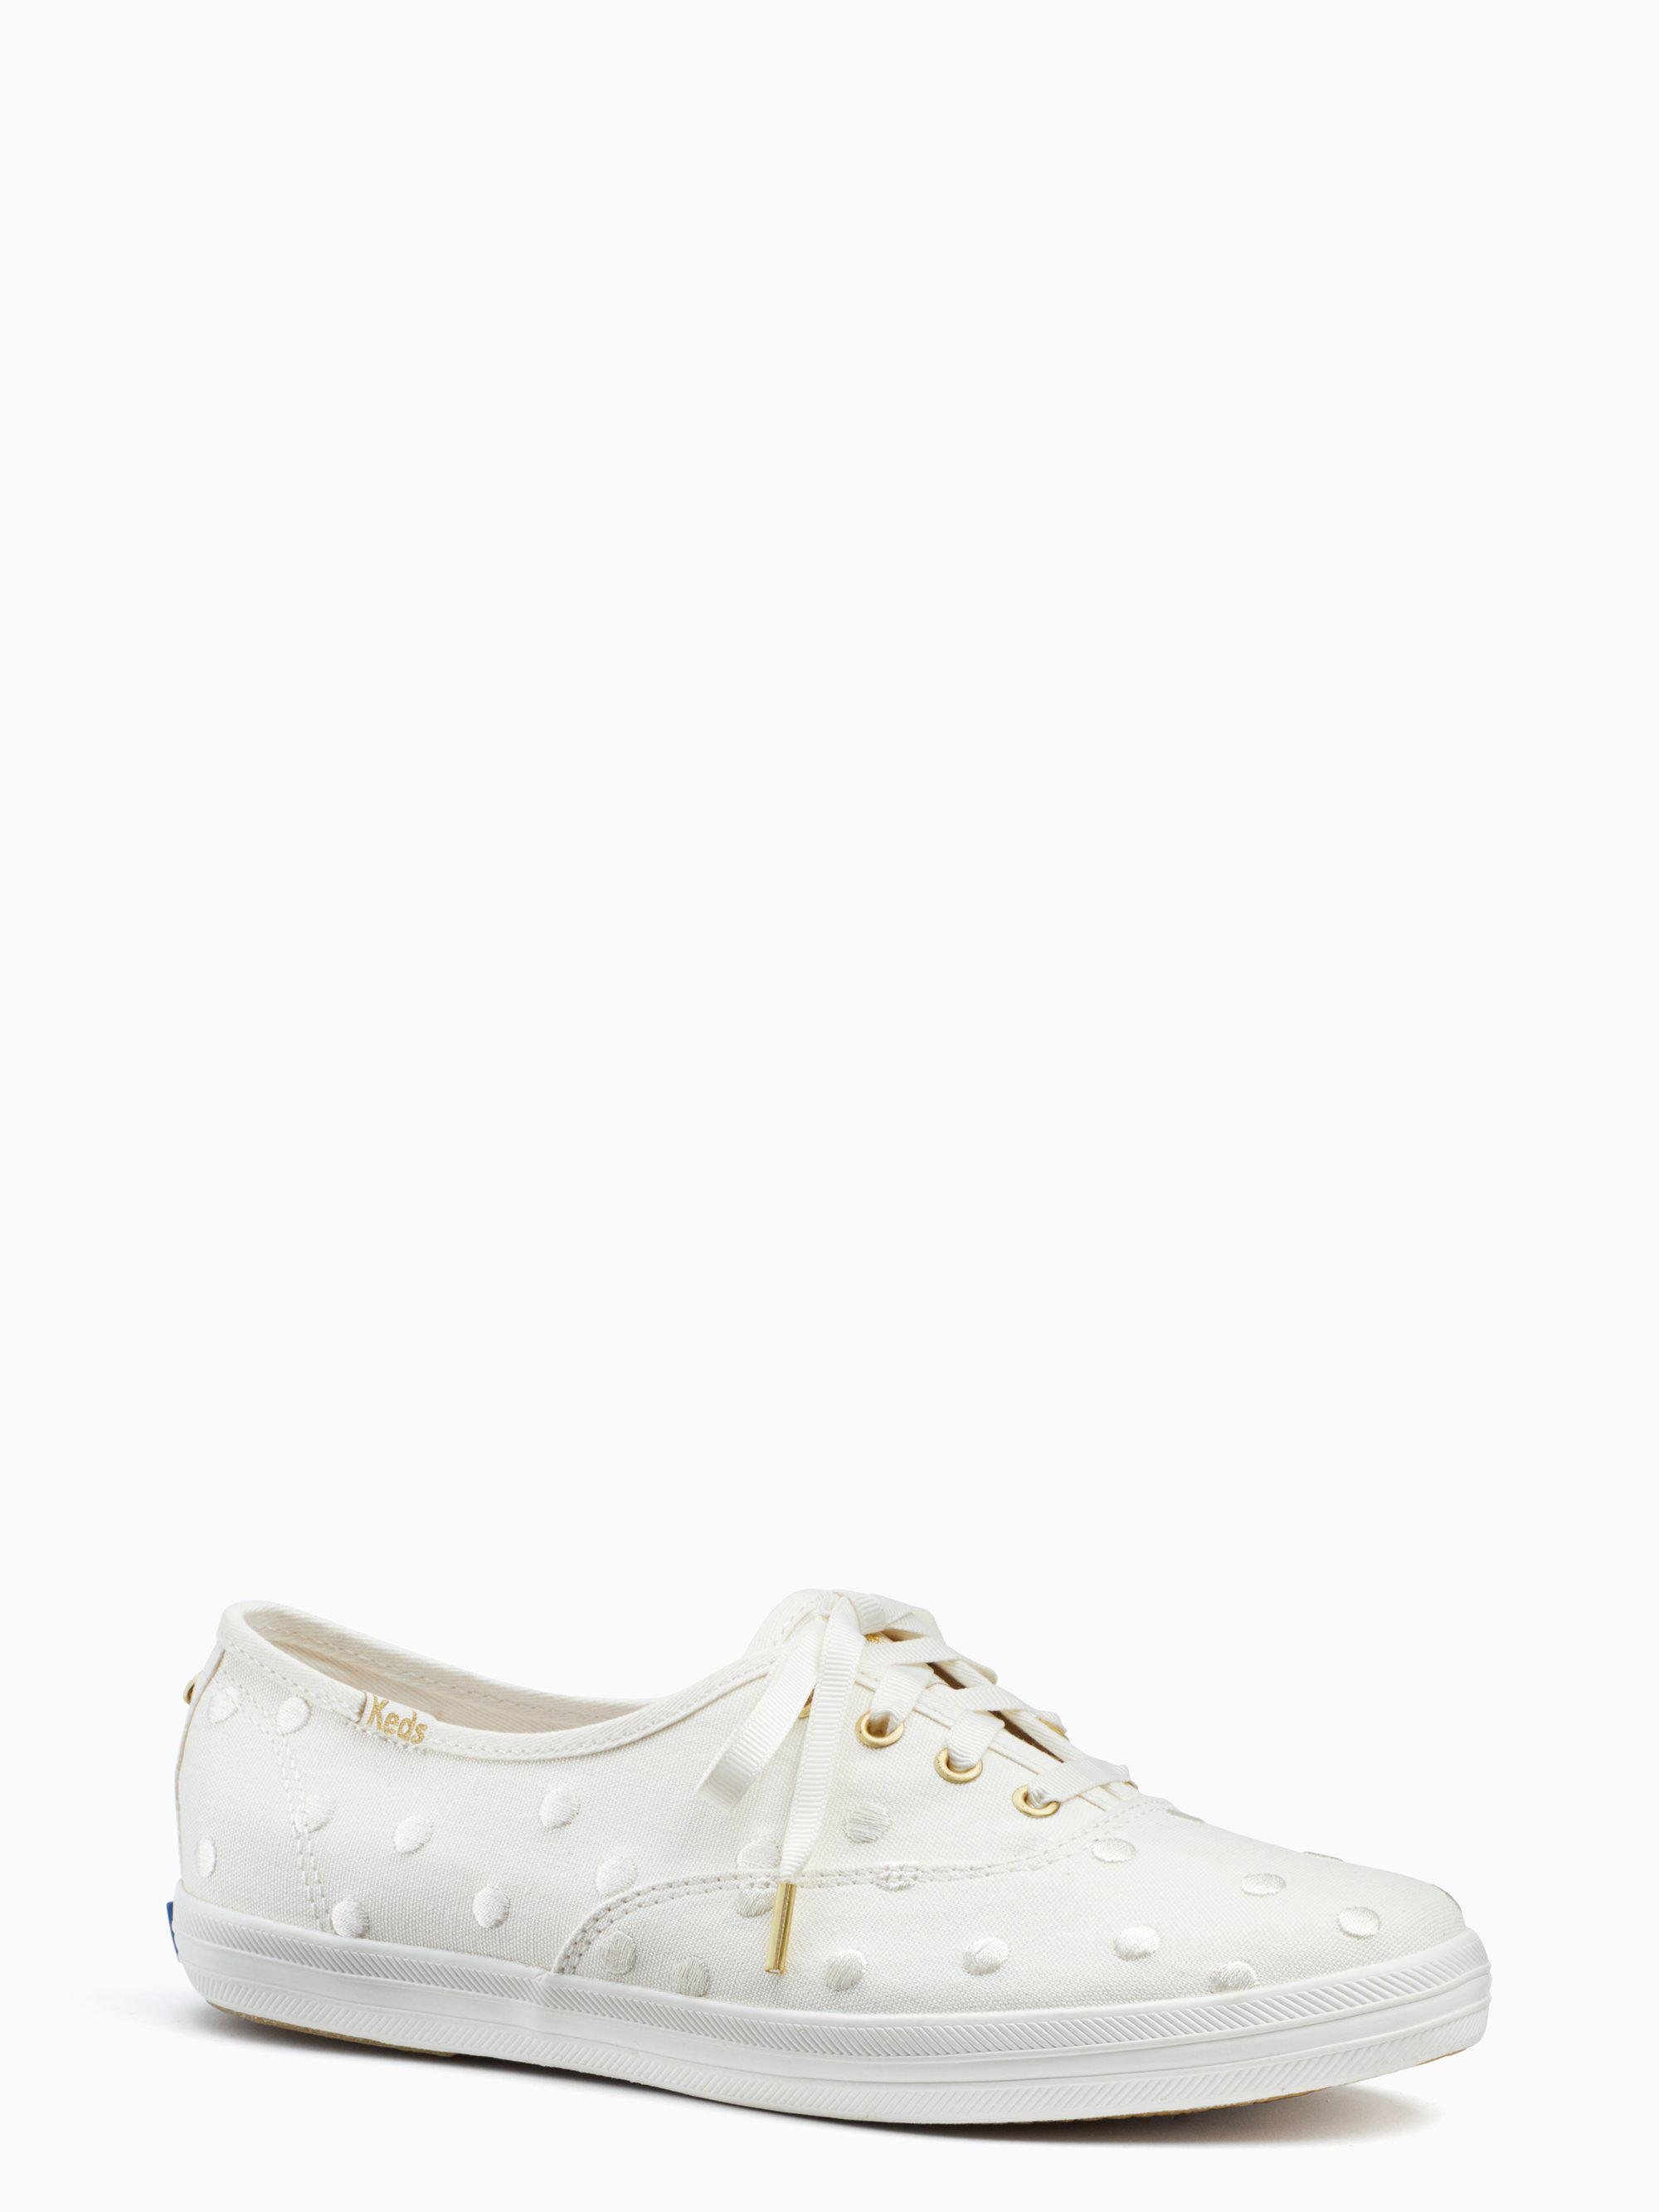 6d11e8441e Lyst - Kate Spade Keds X New York Champion Sneakers in White